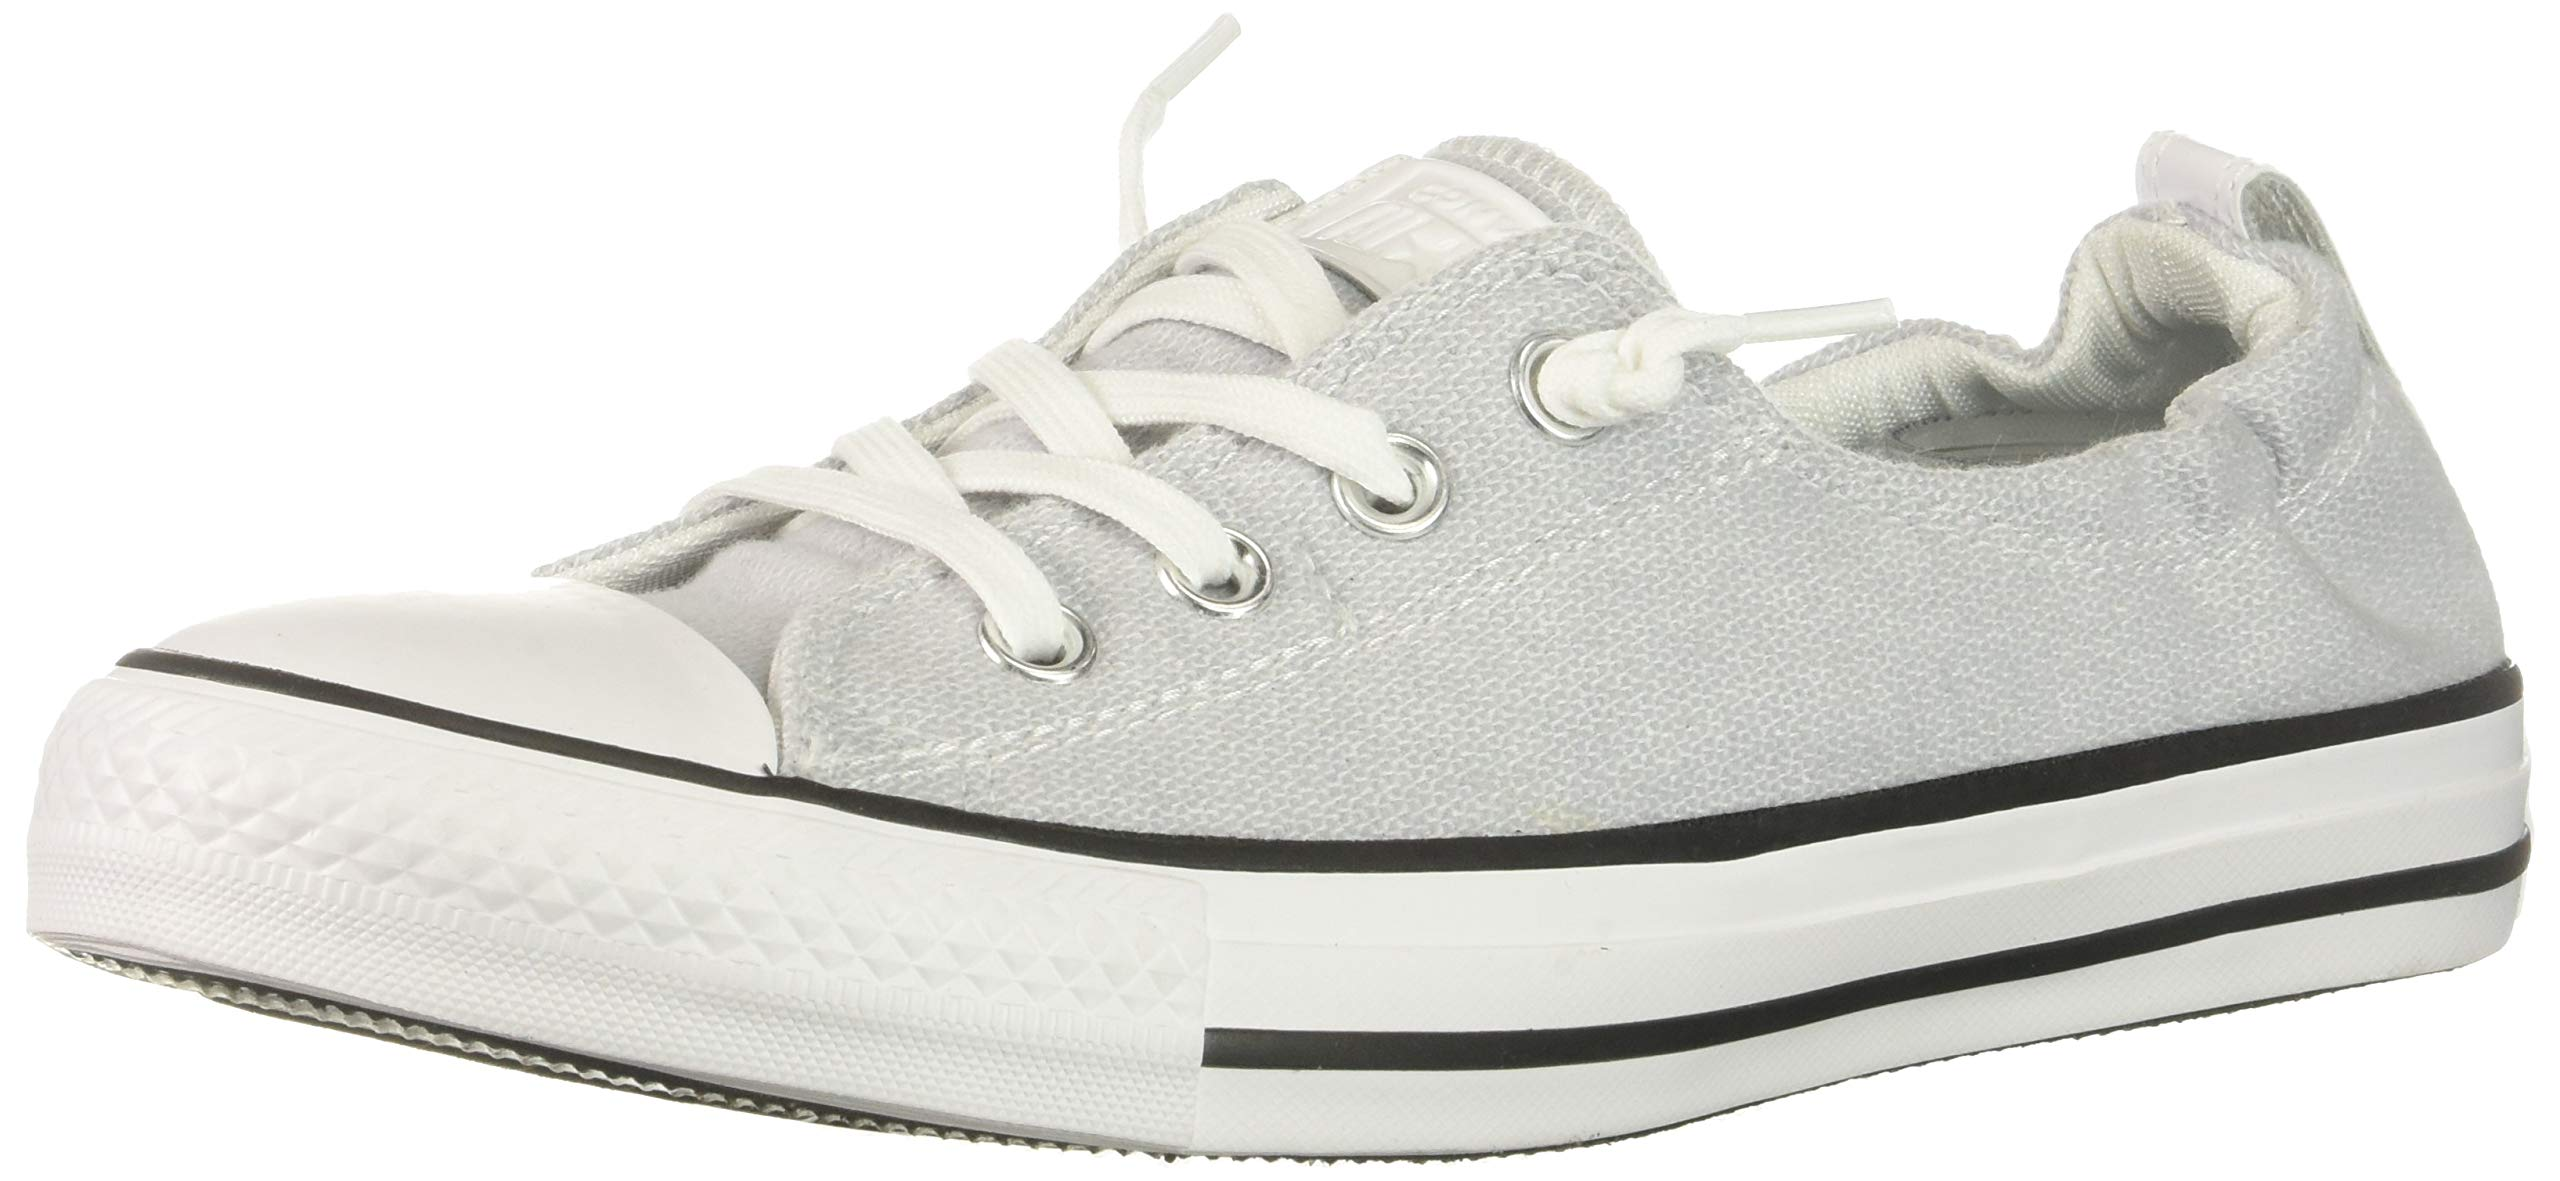 a83b714e63b1ce Galleon - Converse Women s Chuck Taylor All Star Shoreline Sneaker ...